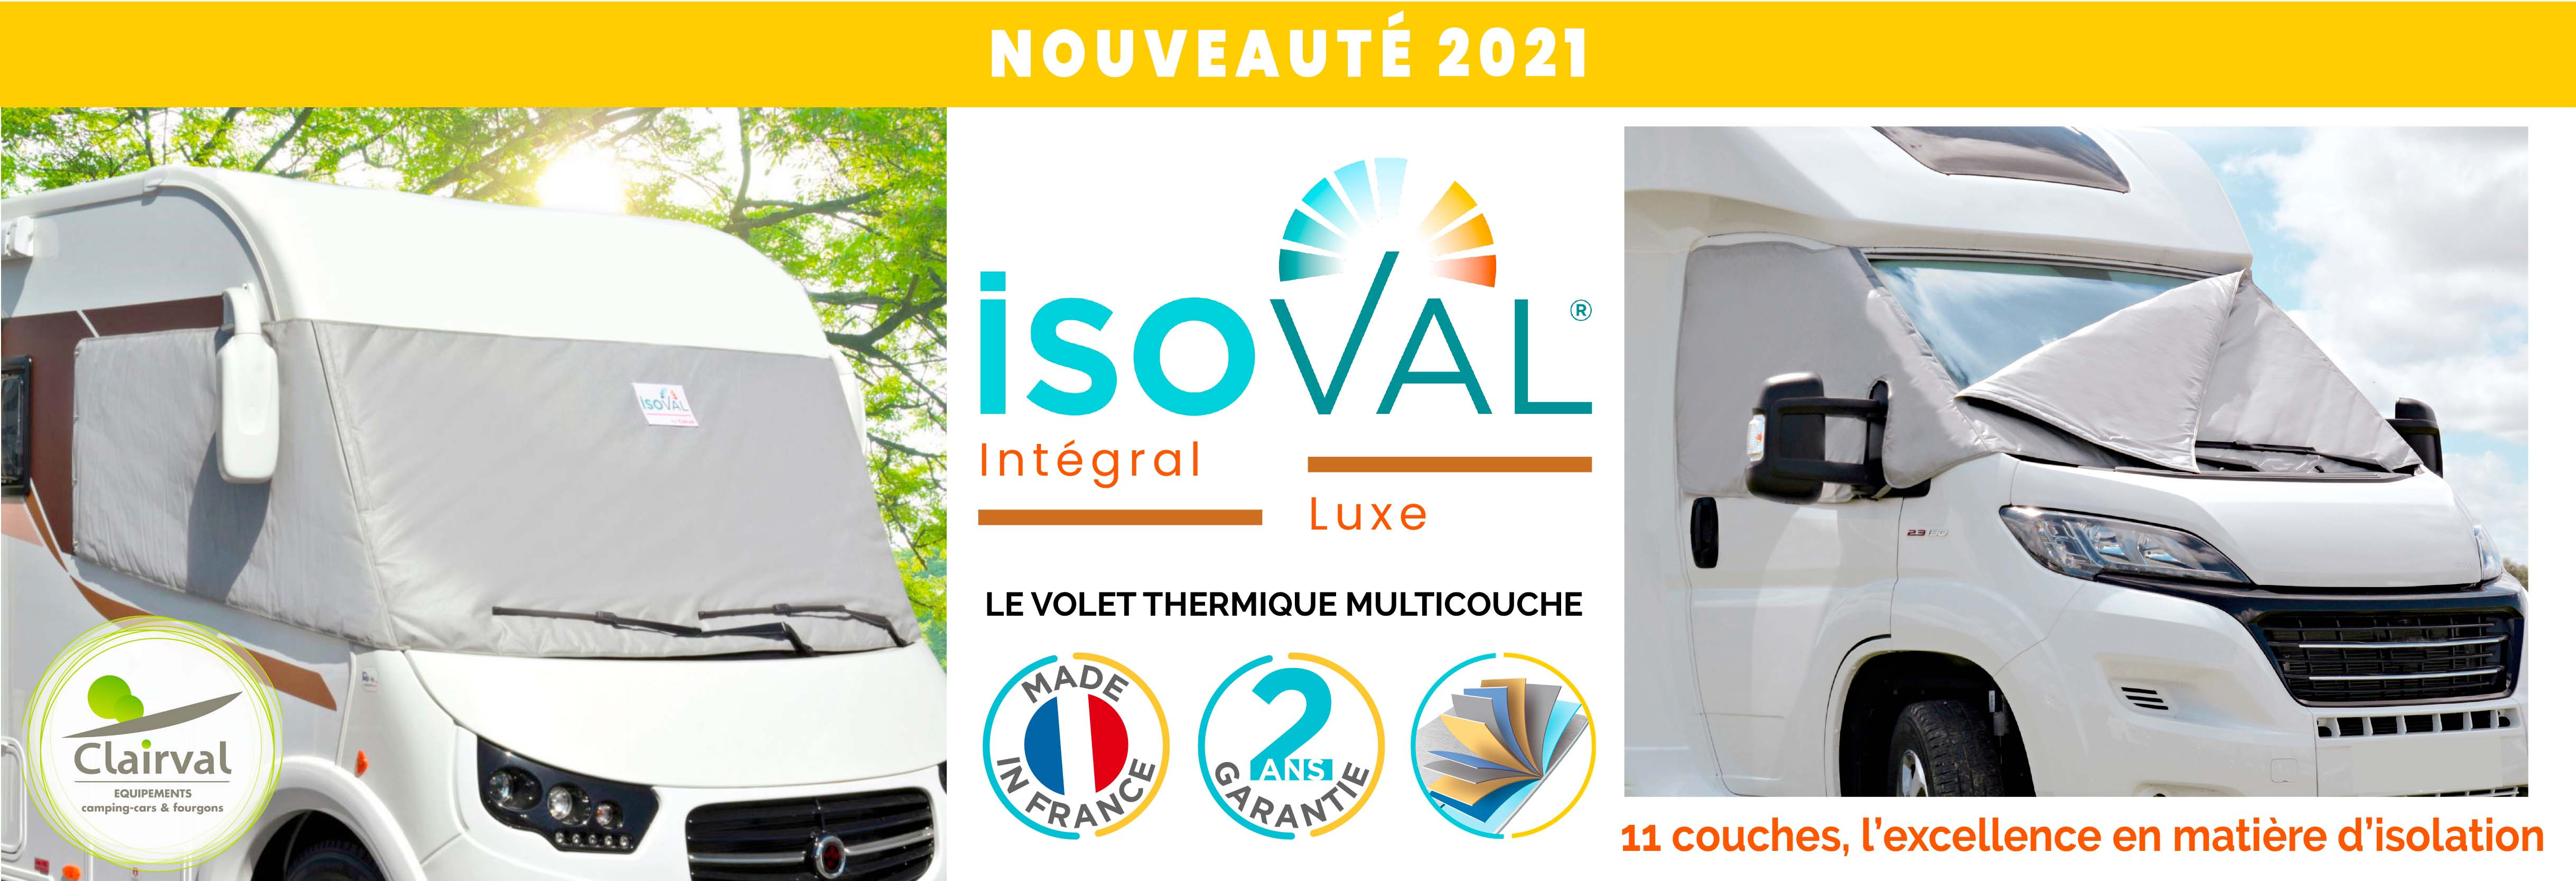 isoval-clairval